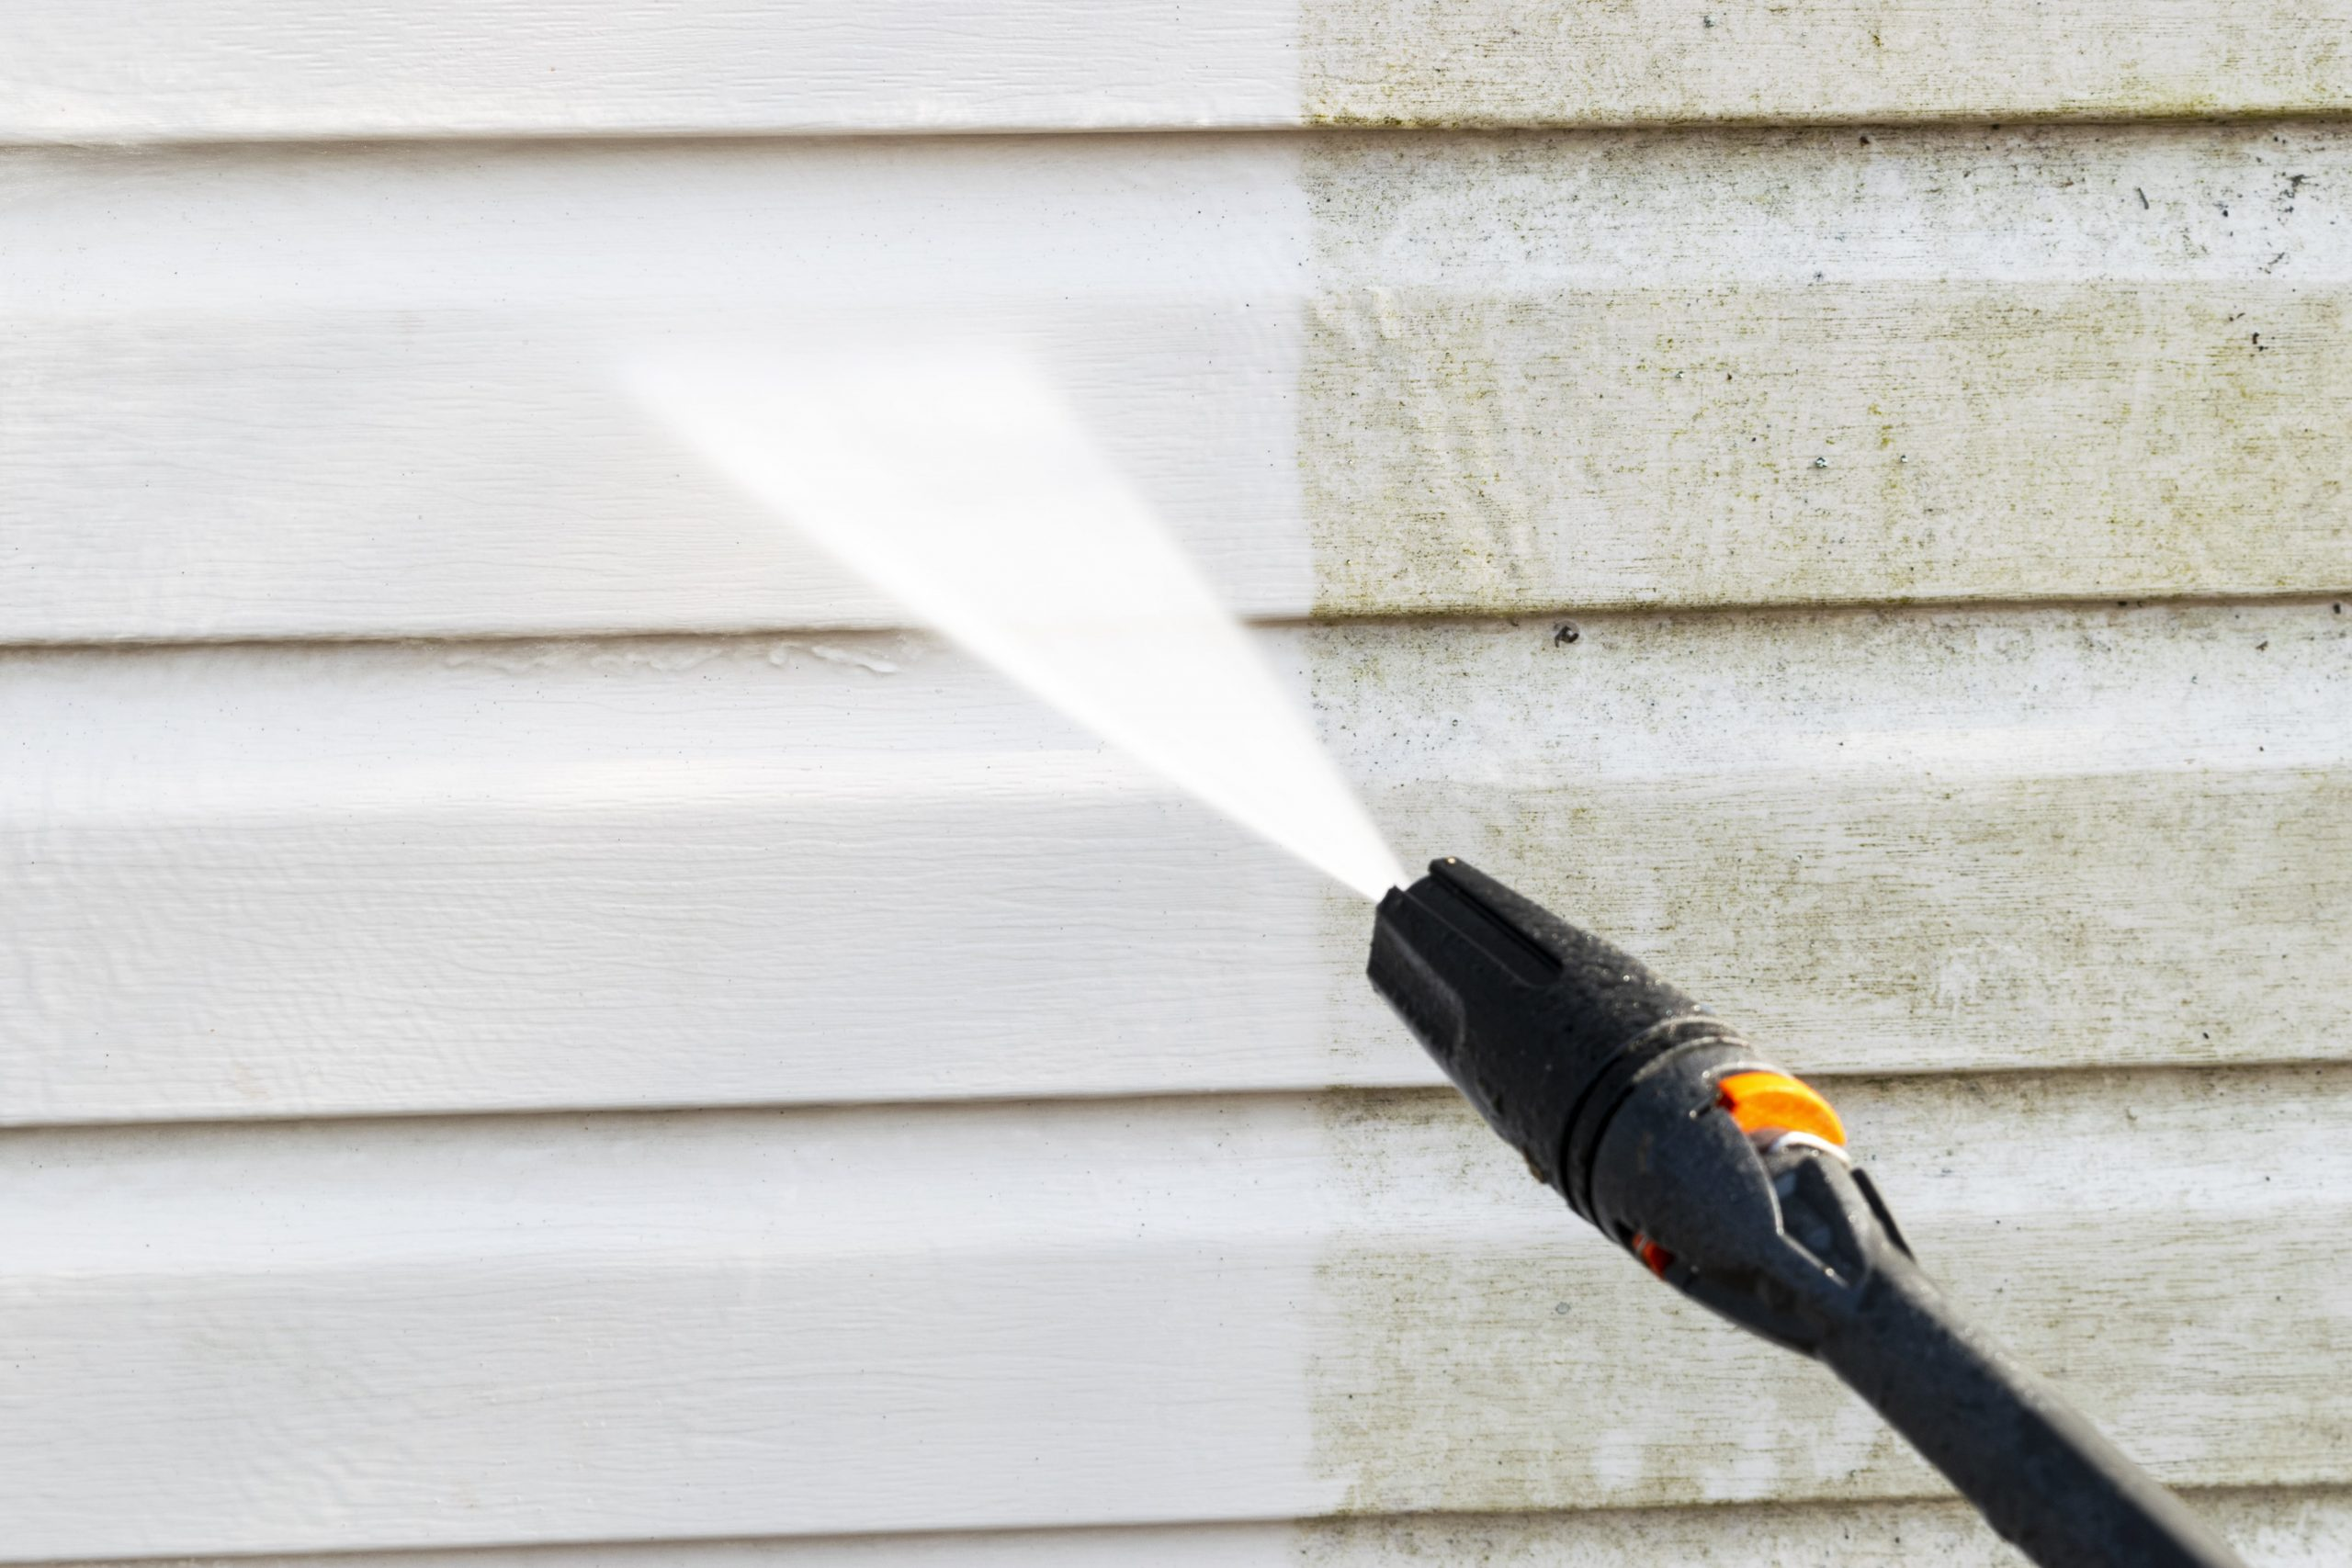 image of power washed building siding clean vs dirty side